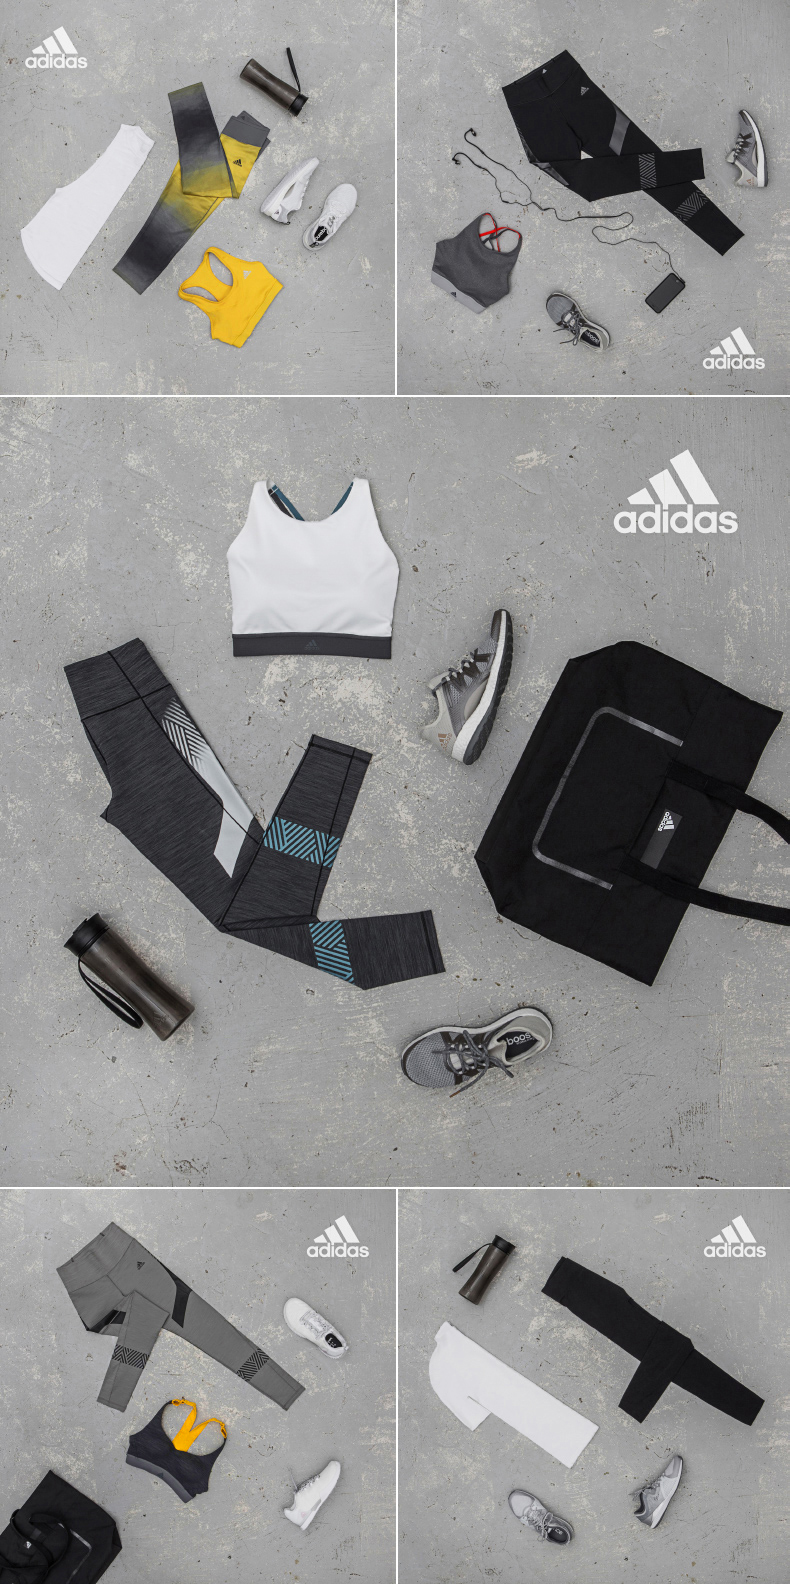 Adidas Essential by Dawid Markoff